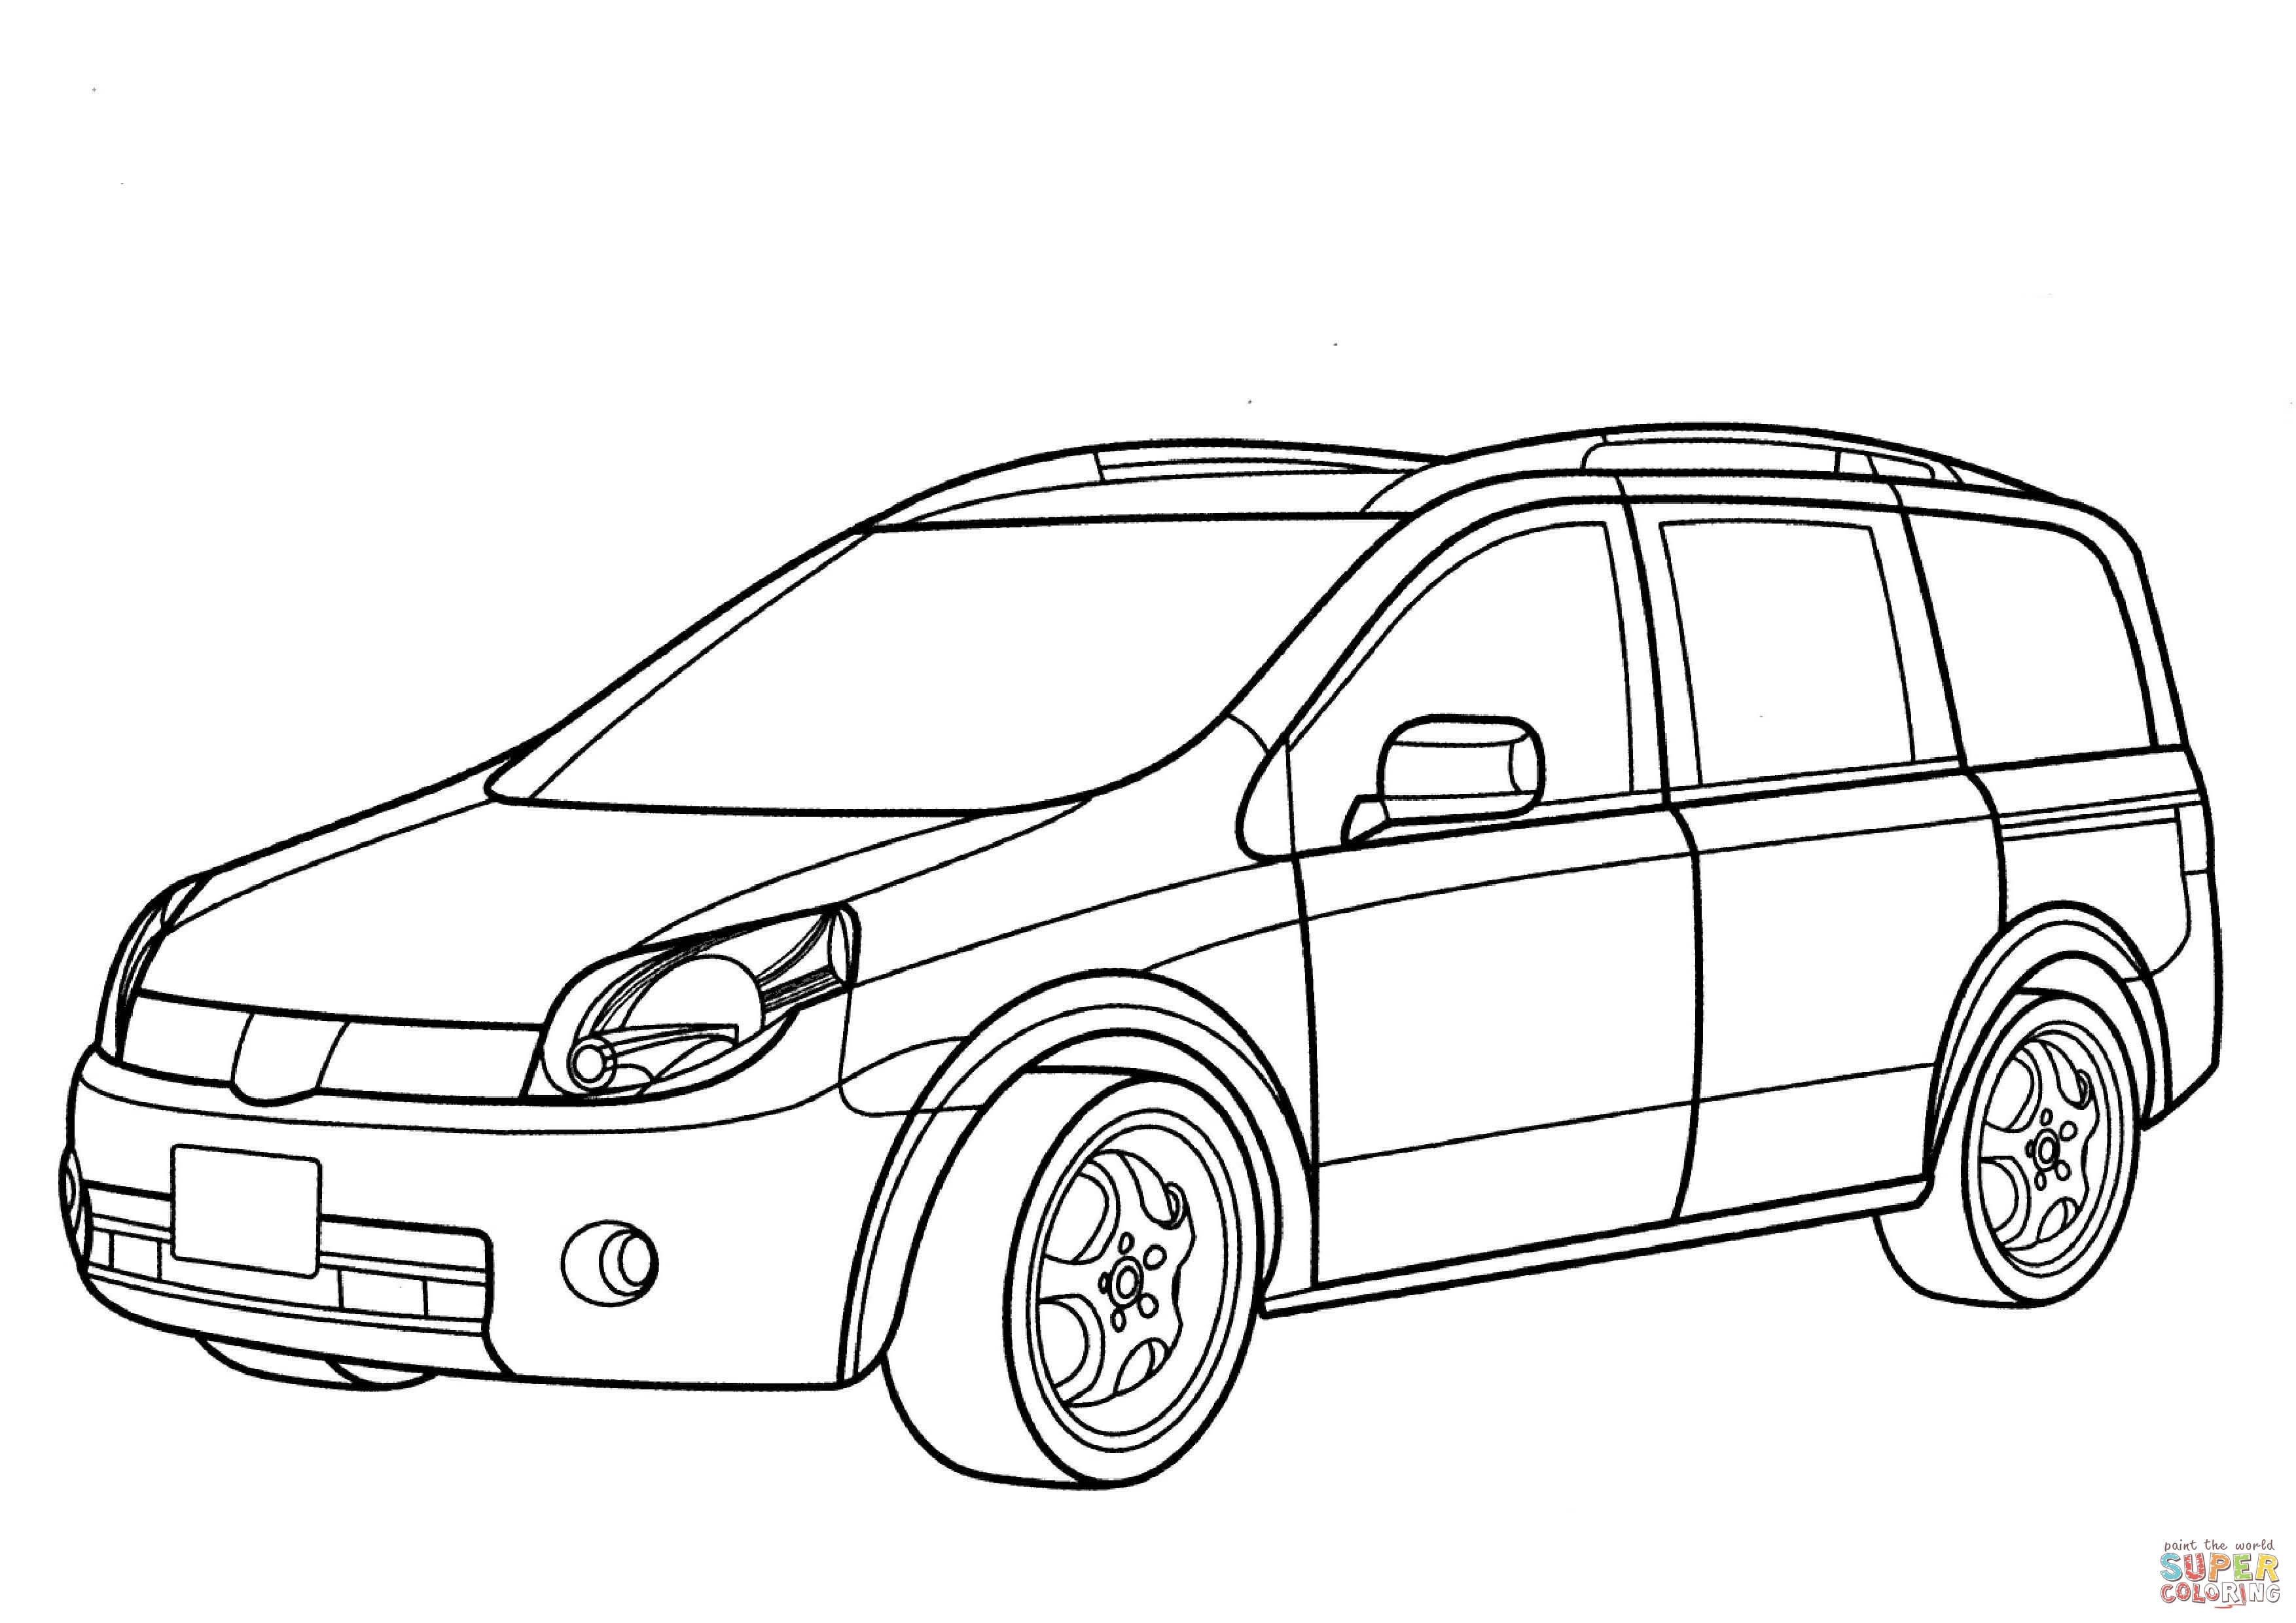 3508x2480 Nissan Lafesta Minivan Coloring Page Free Printable Coloring Pages